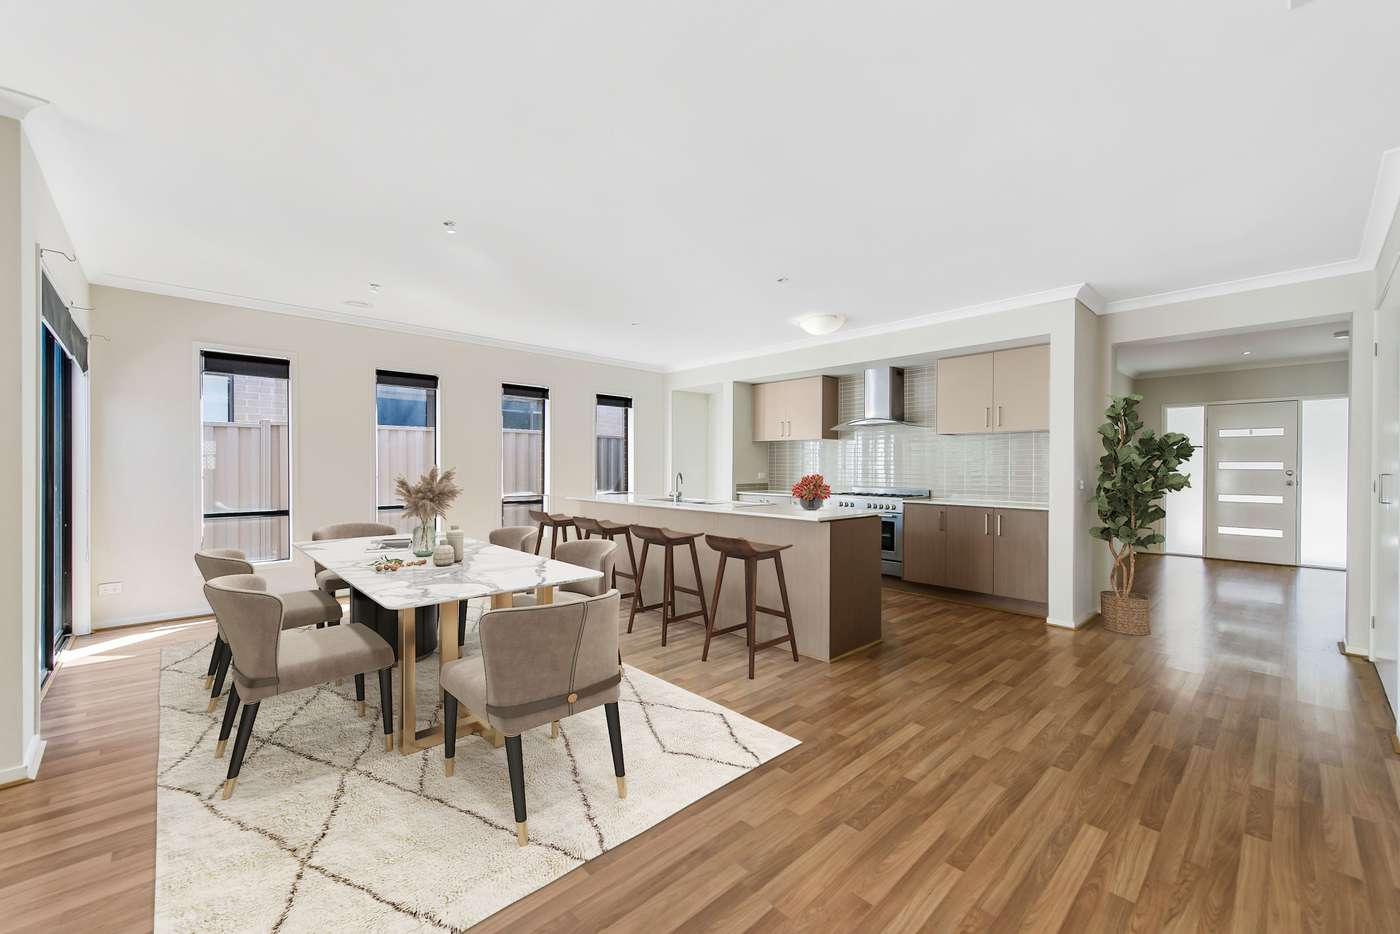 Sixth view of Homely house listing, 78 Lawson Way, Caroline Springs VIC 3023